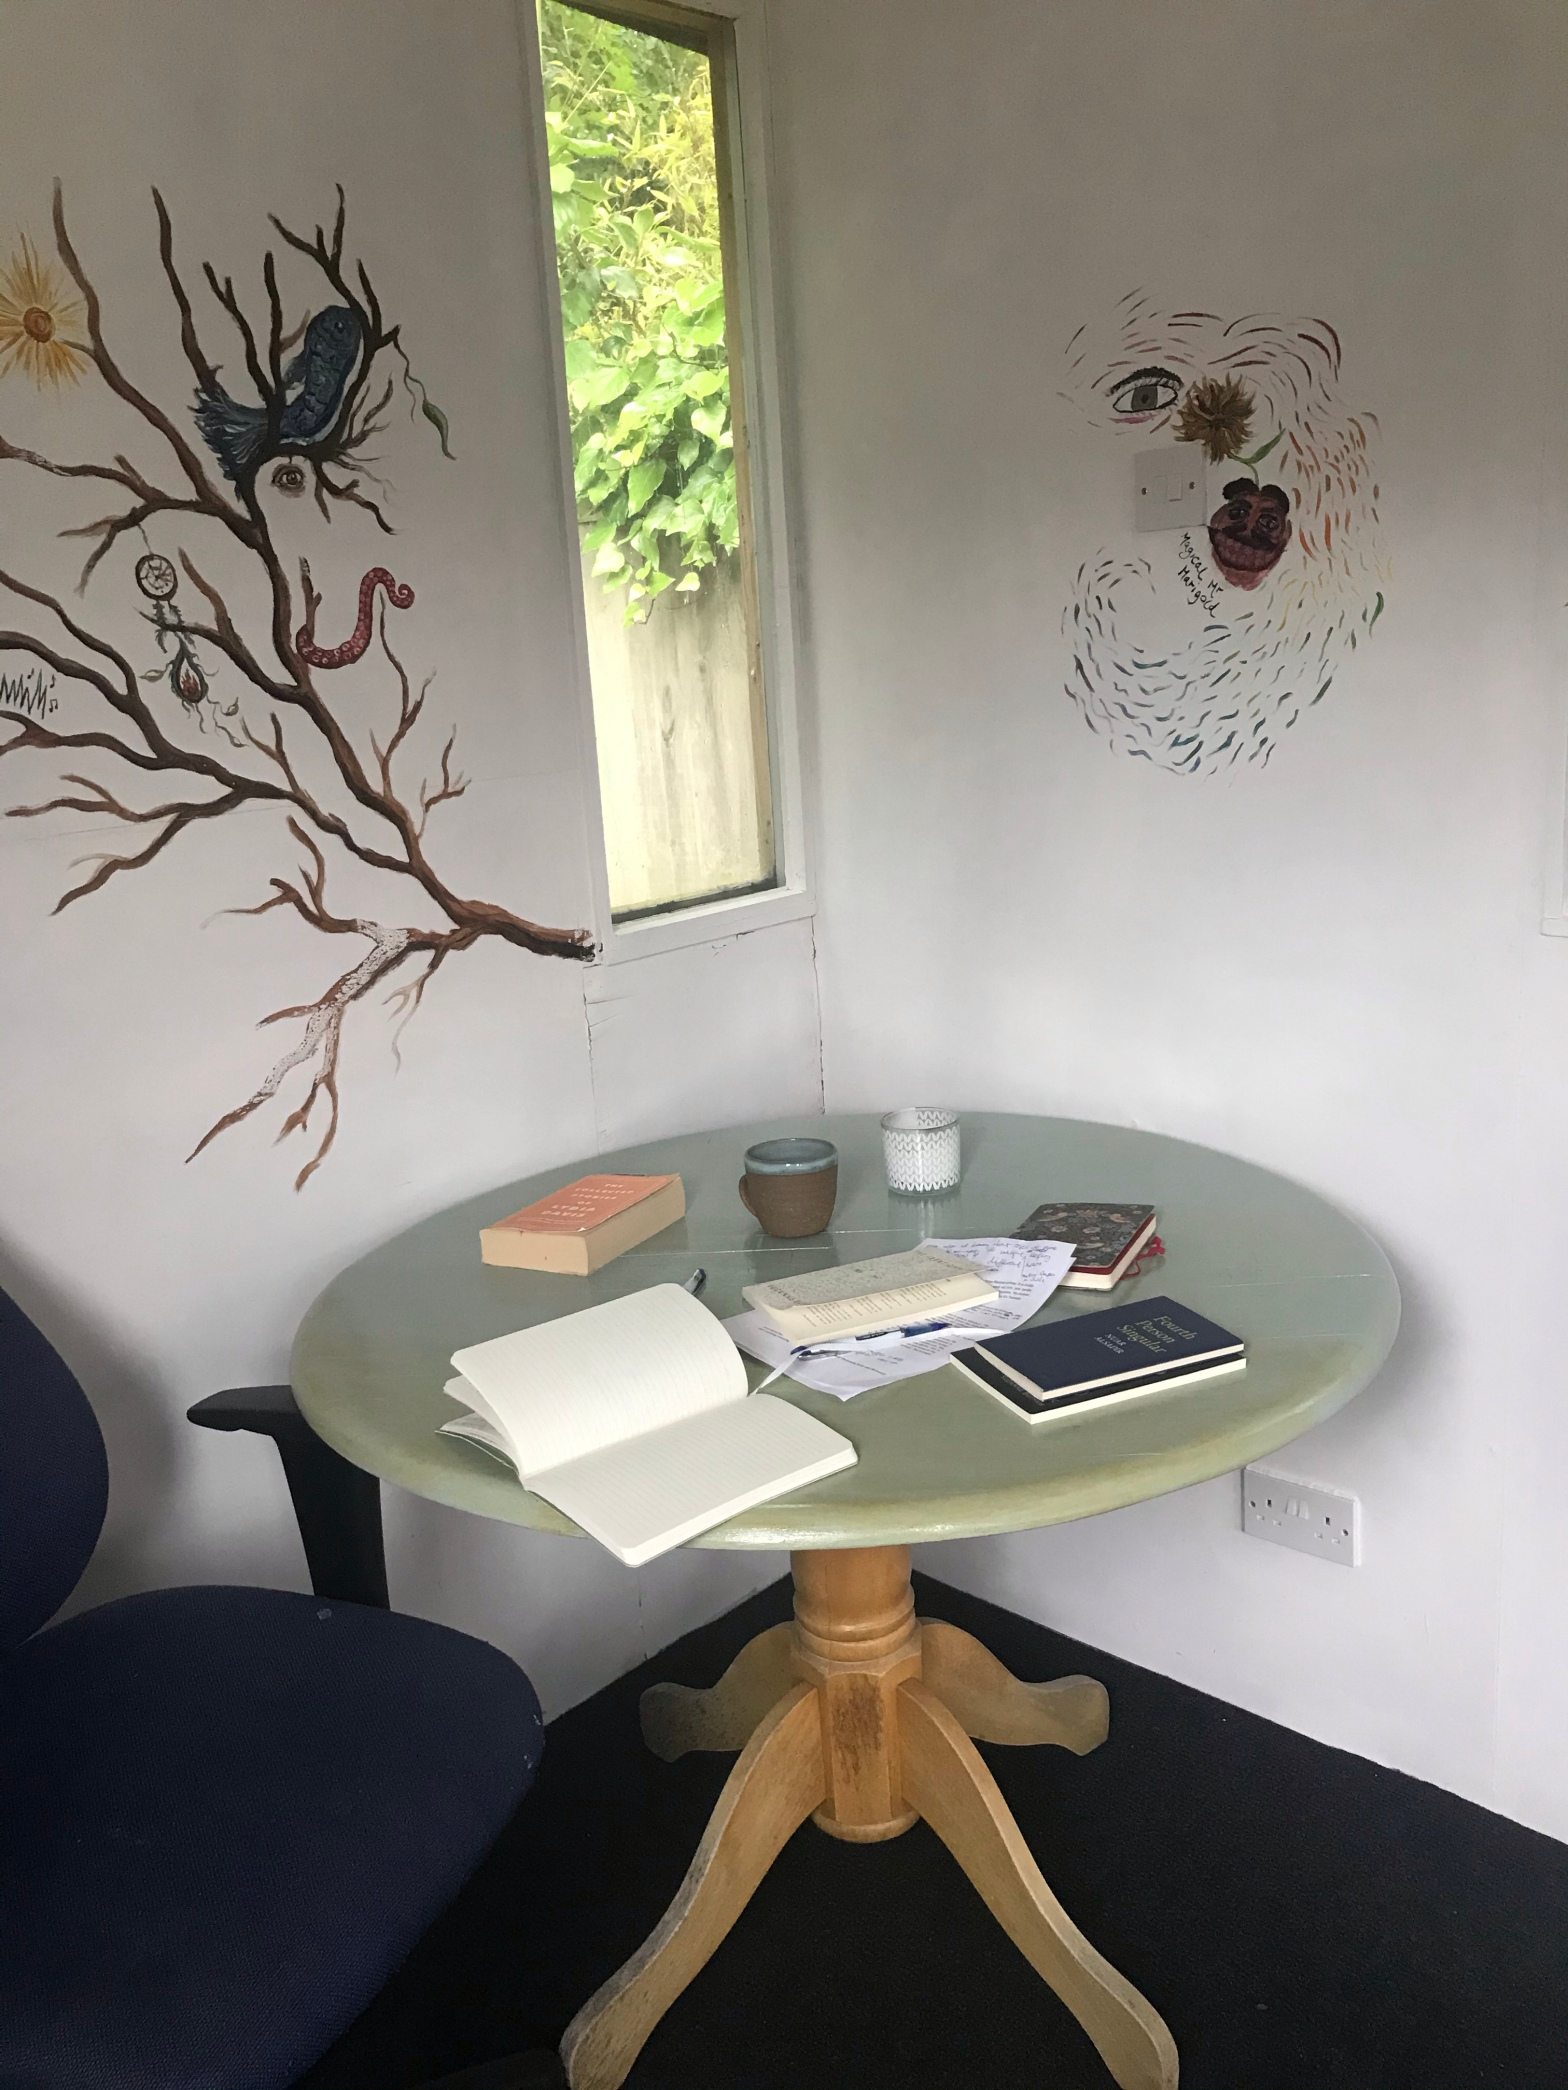 The image is of a table that has books and notebooks on it. It is by a small window and there are drawings on the adjacent white walls.